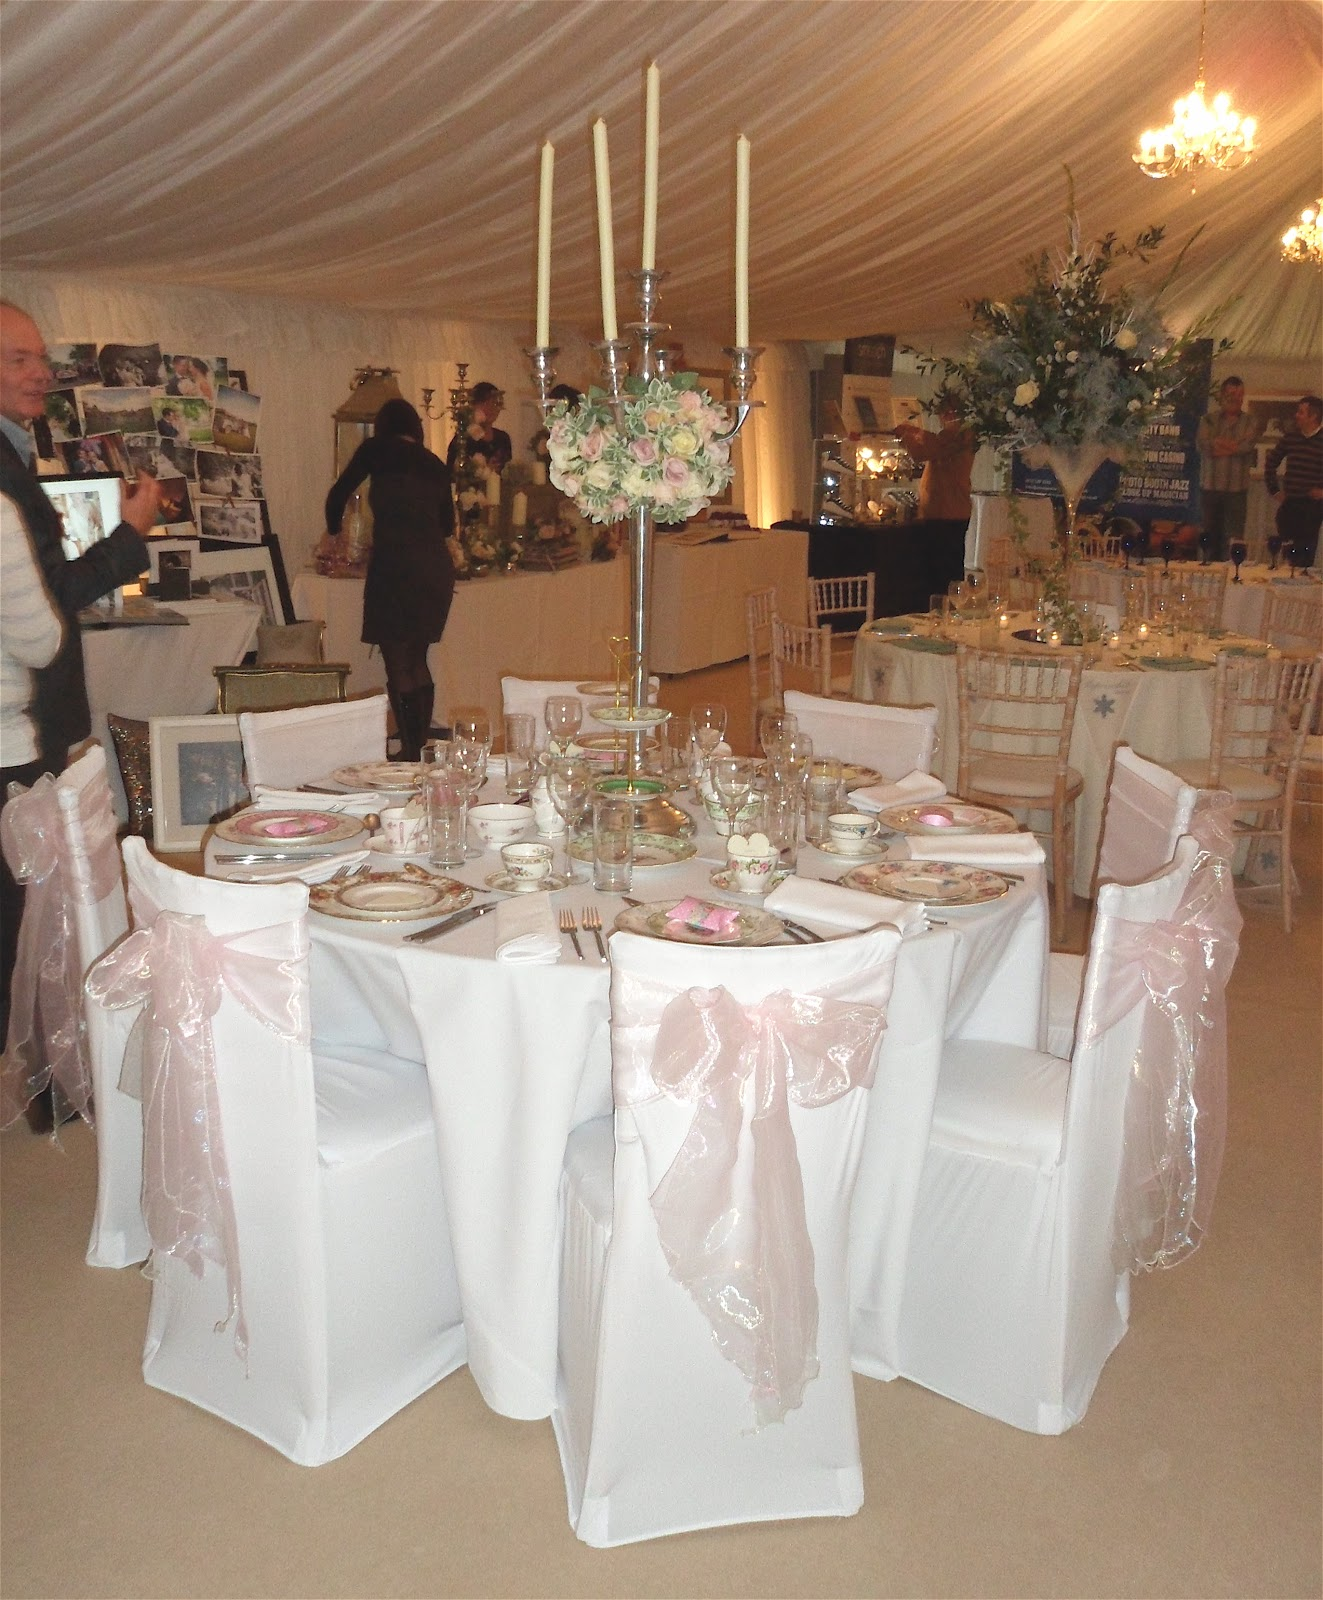 Ivory Chair Covers With Gold Sash Gaming Steel Frame Wow Factor Wedding Hoods And Sashes